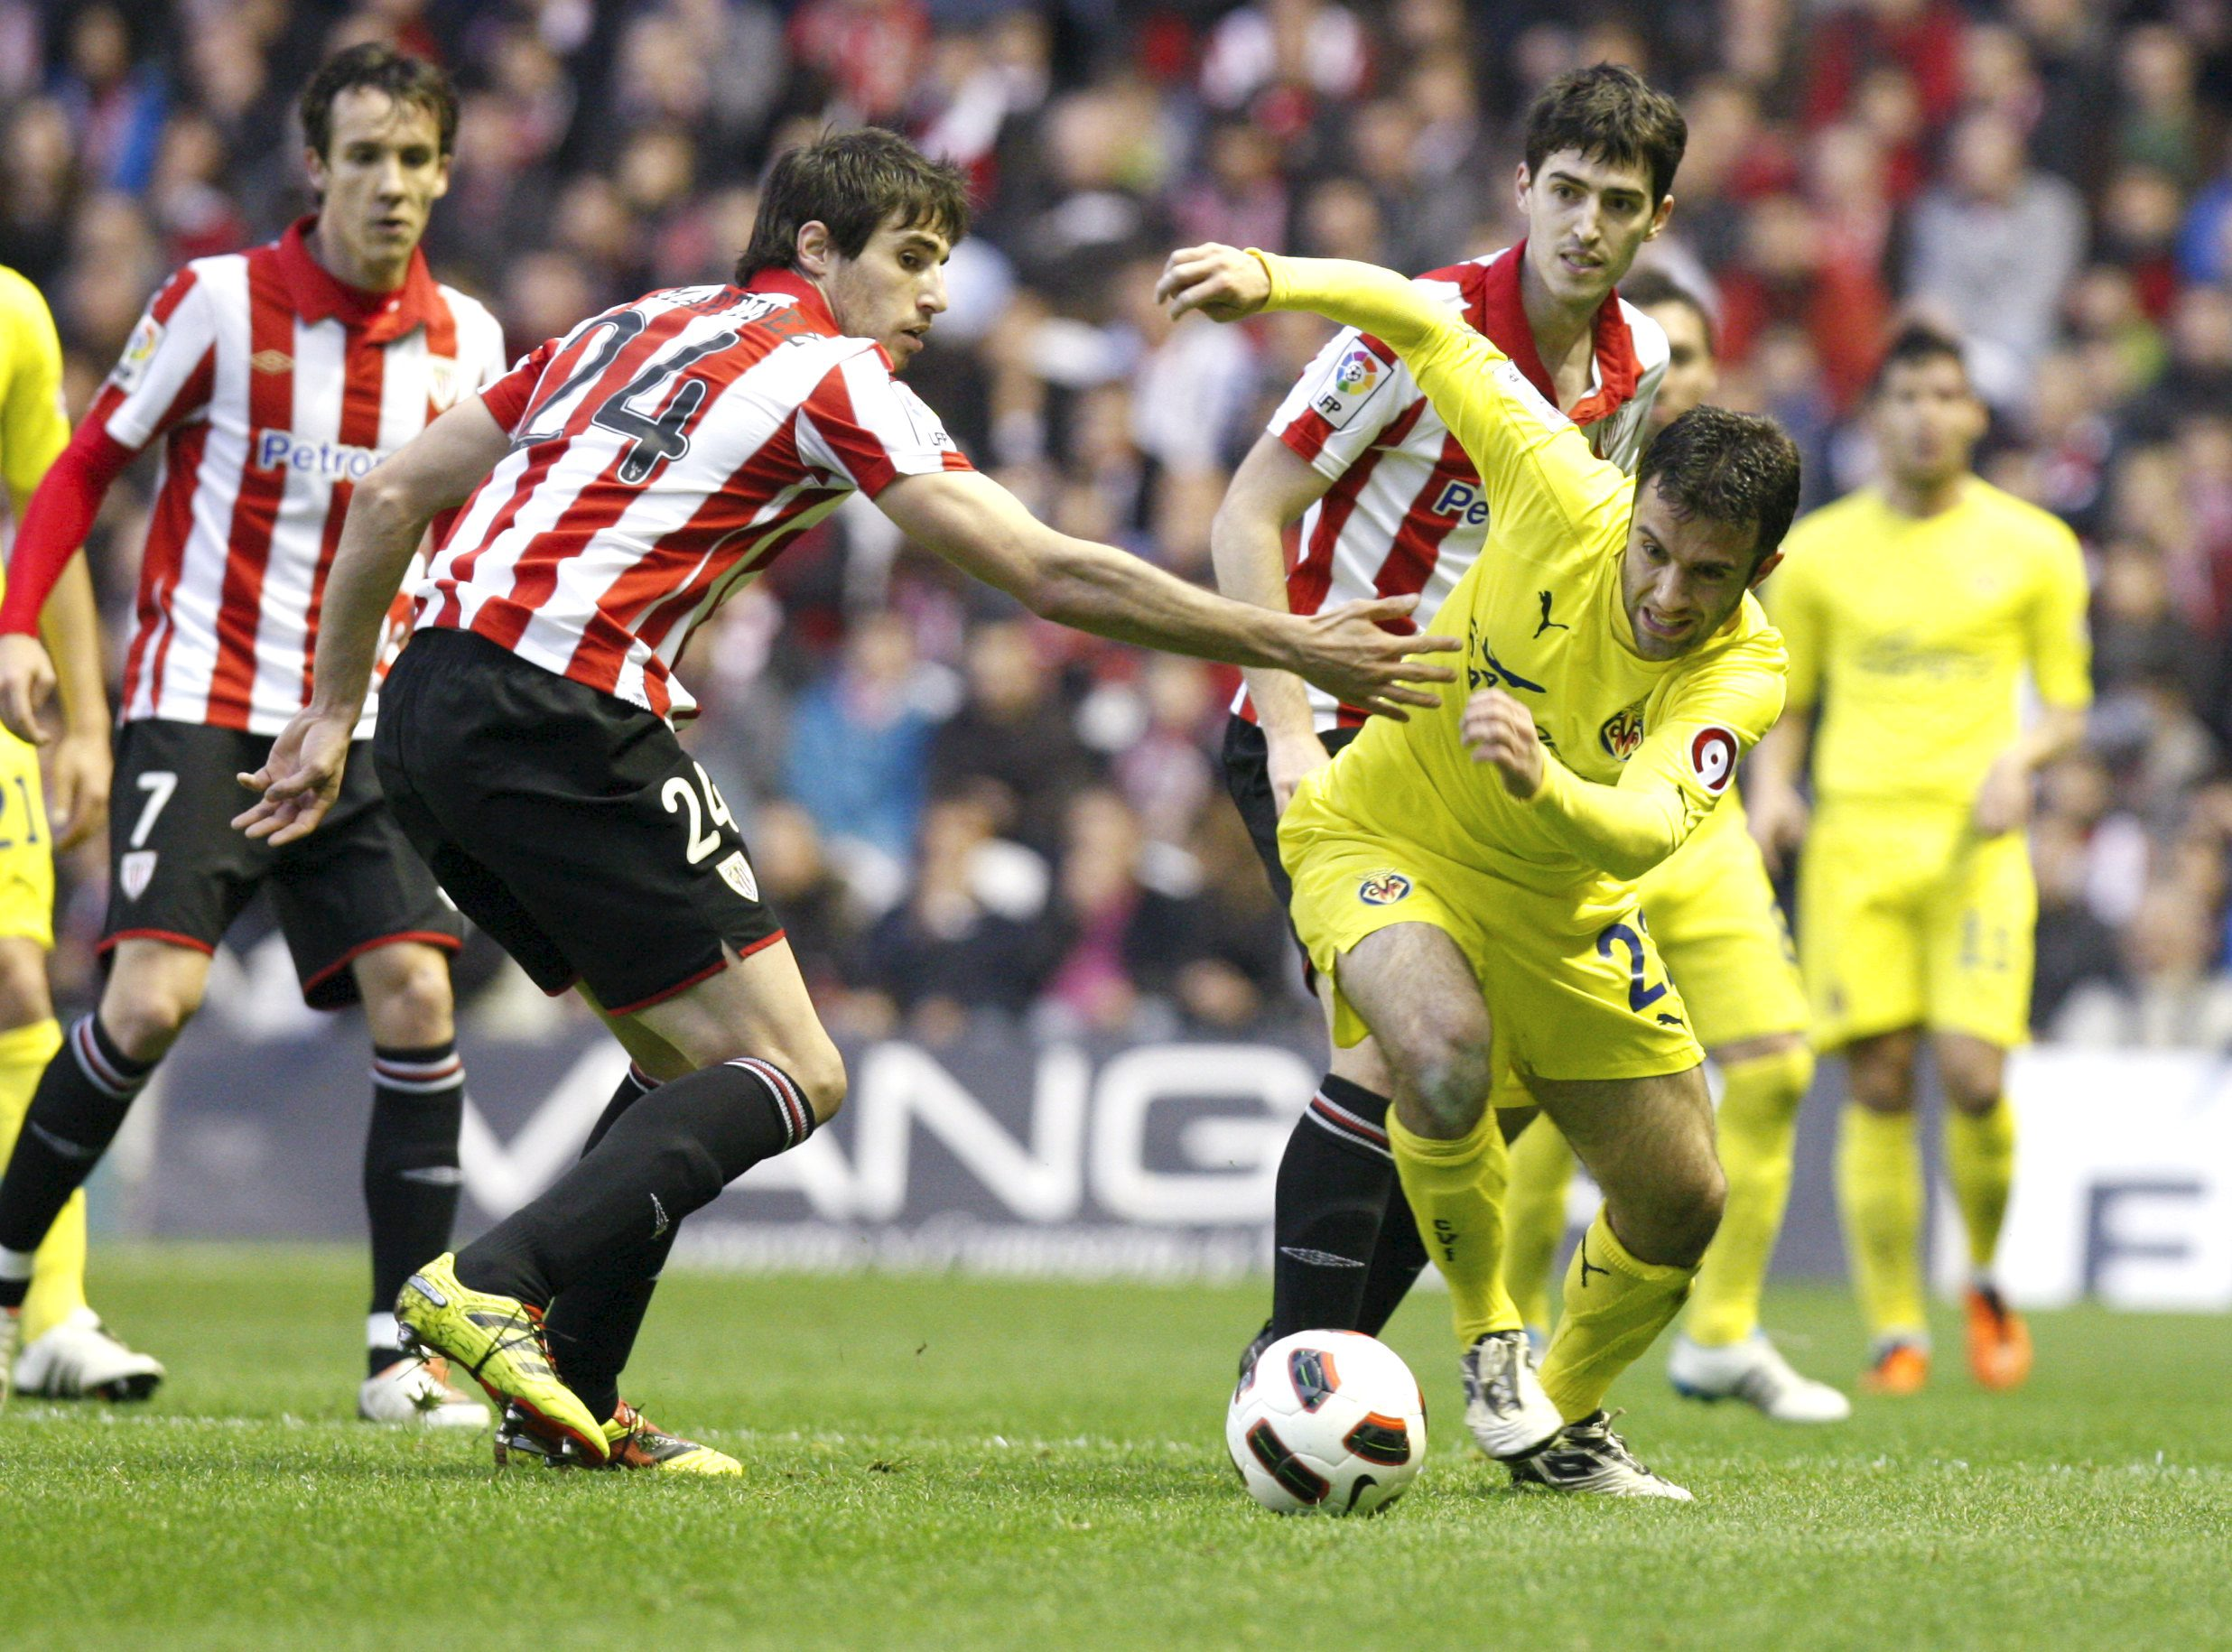 ATHLETIC DE BILBAO- VILLAREAL CF